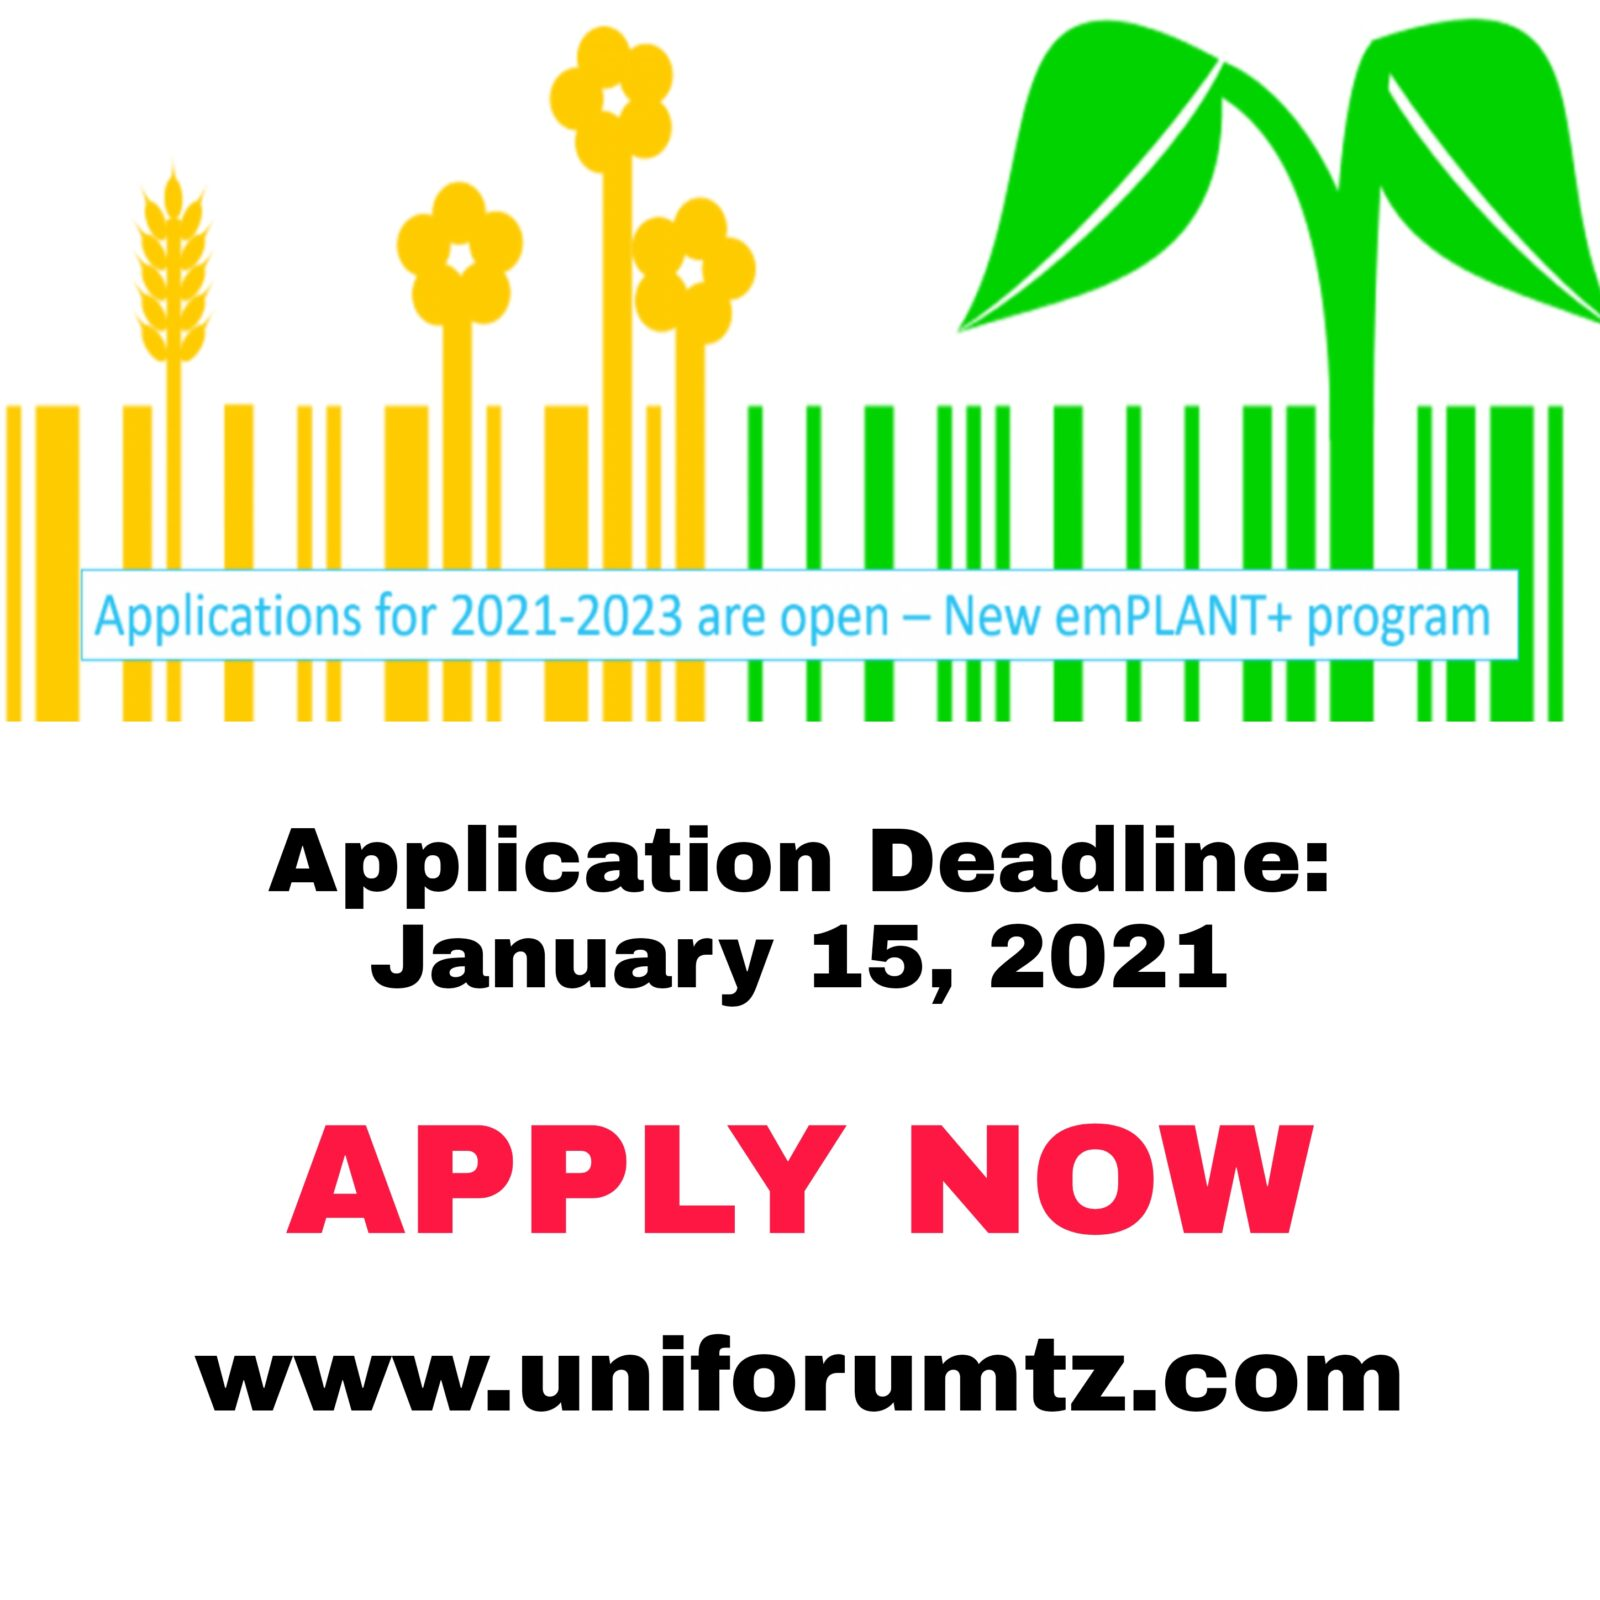 Call for emPLANT+ Applications 2021-2023